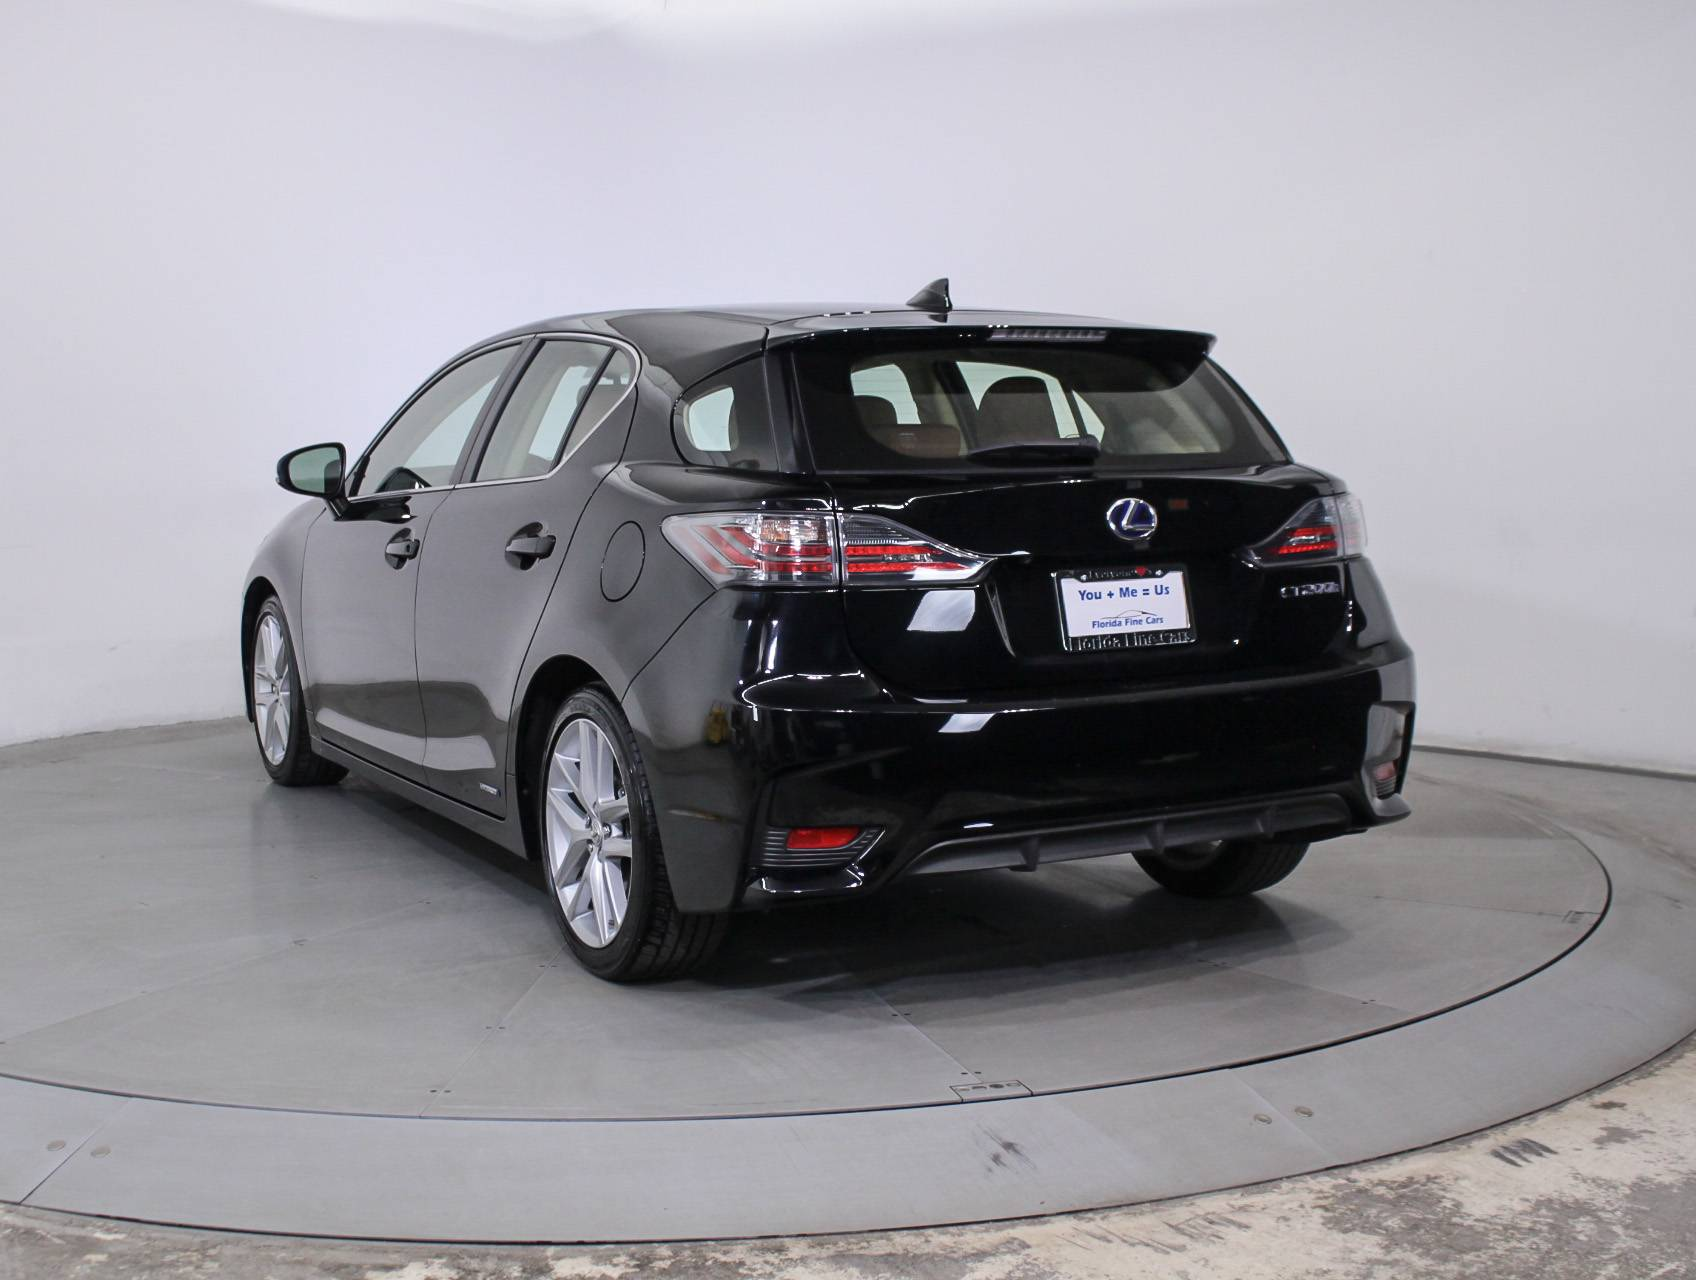 Used 2015 LEXUS CT 200H Hatchback for sale in MIAMI FL